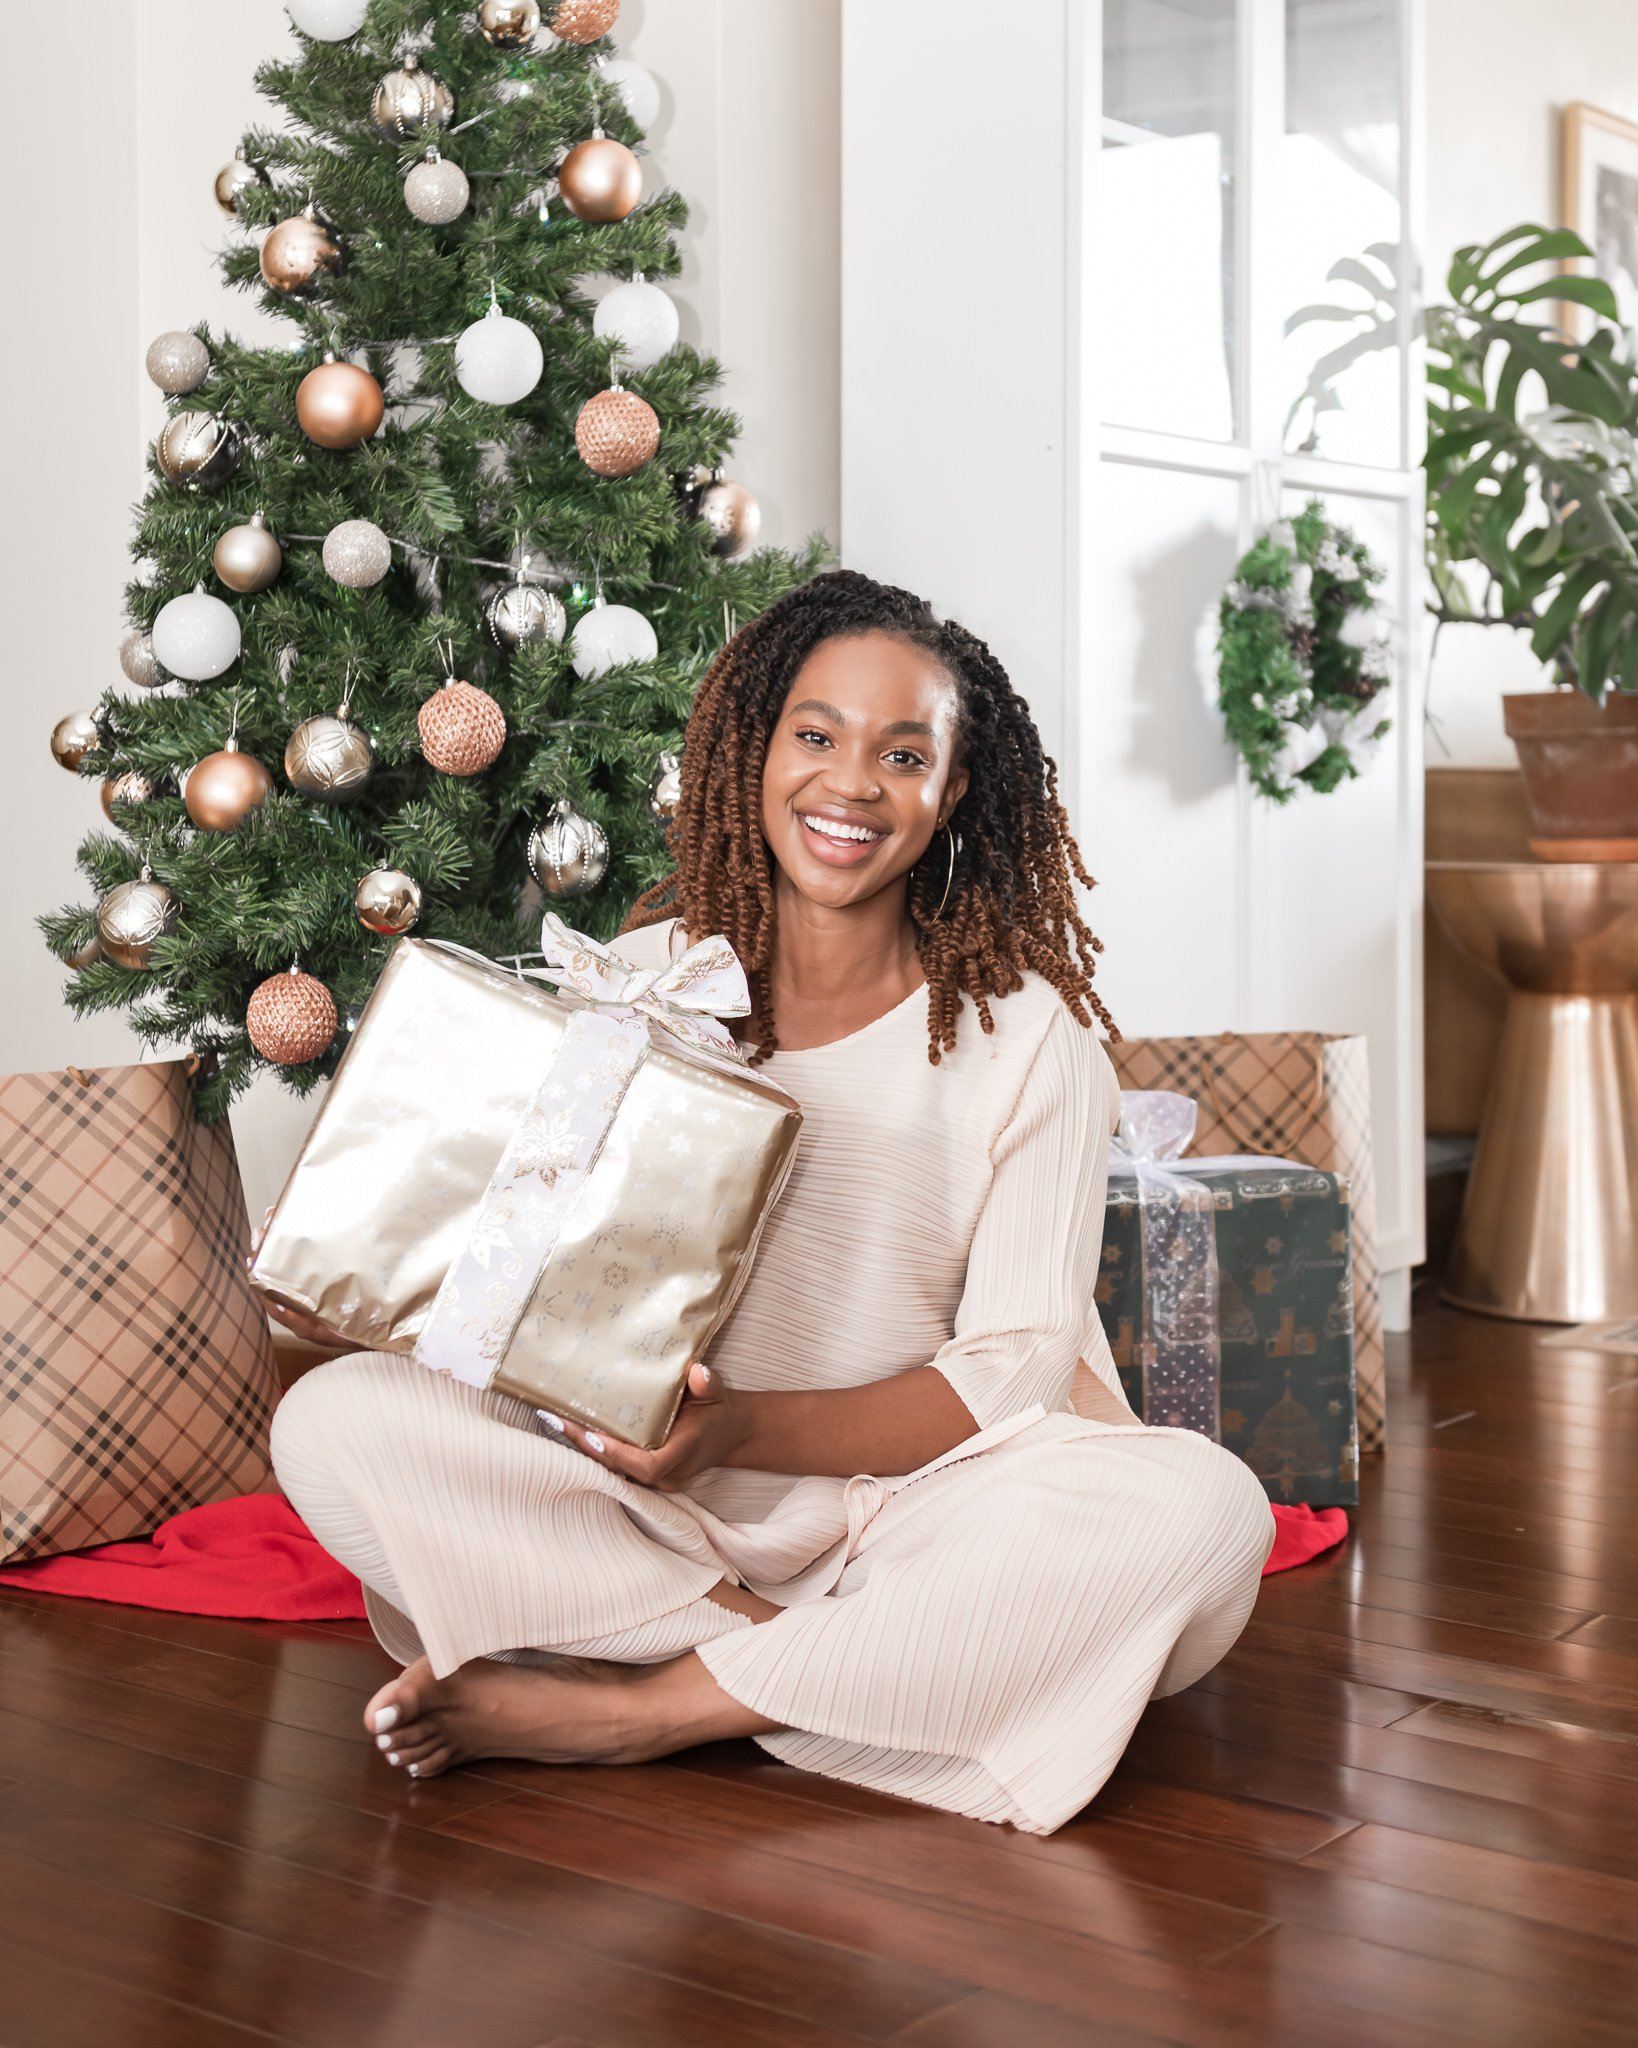 Ijeoma Kola smiling with gold gift box in hands in front of decorated Christmas tree